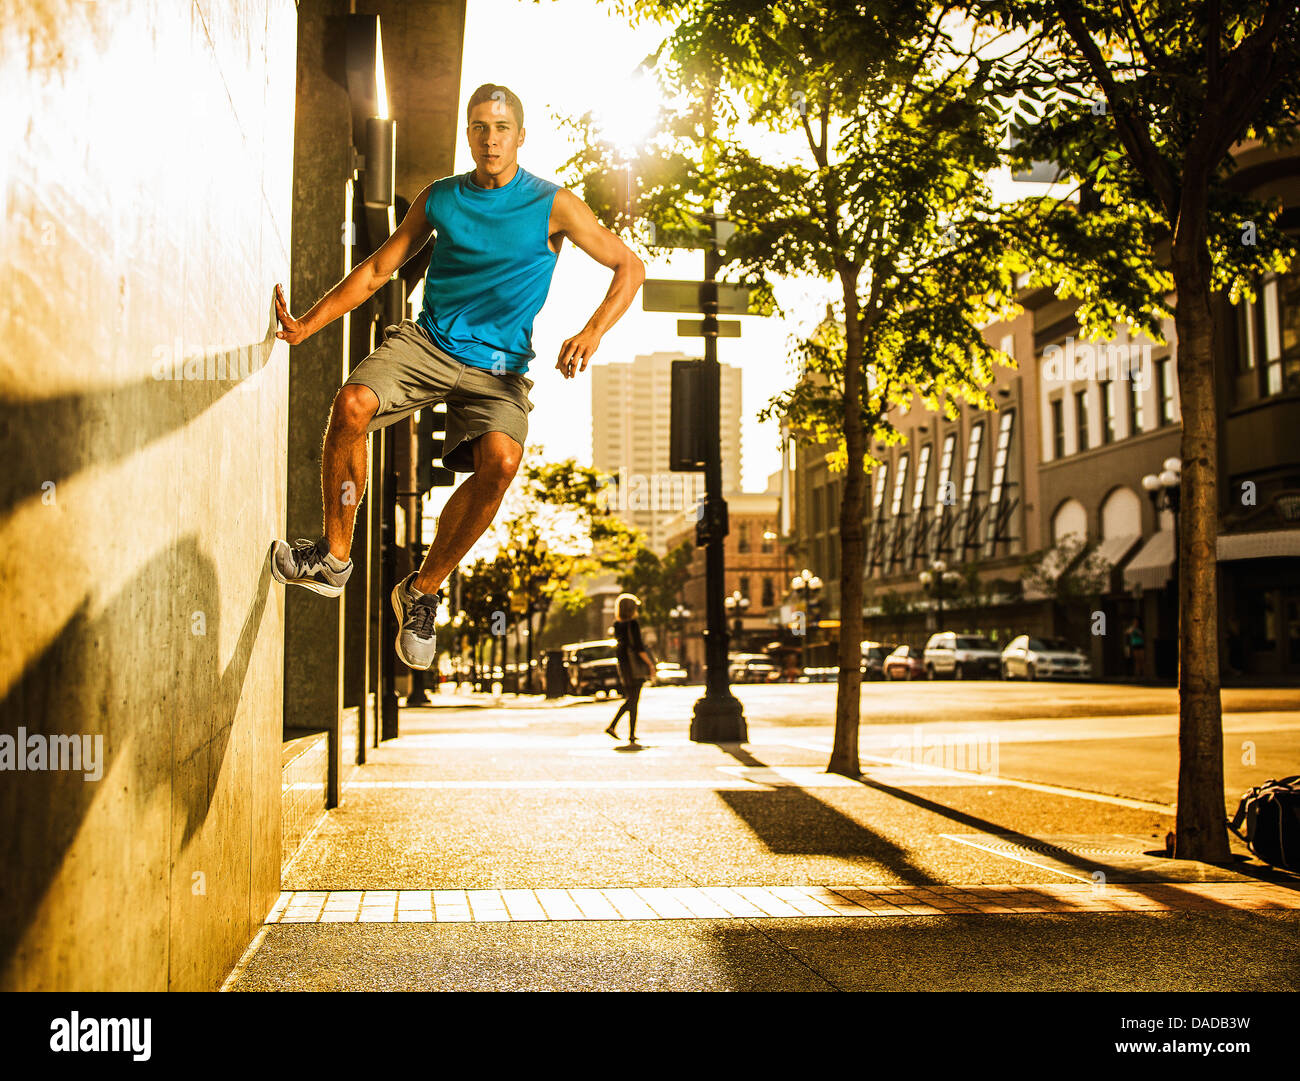 Young man practising parkour - Stock Image